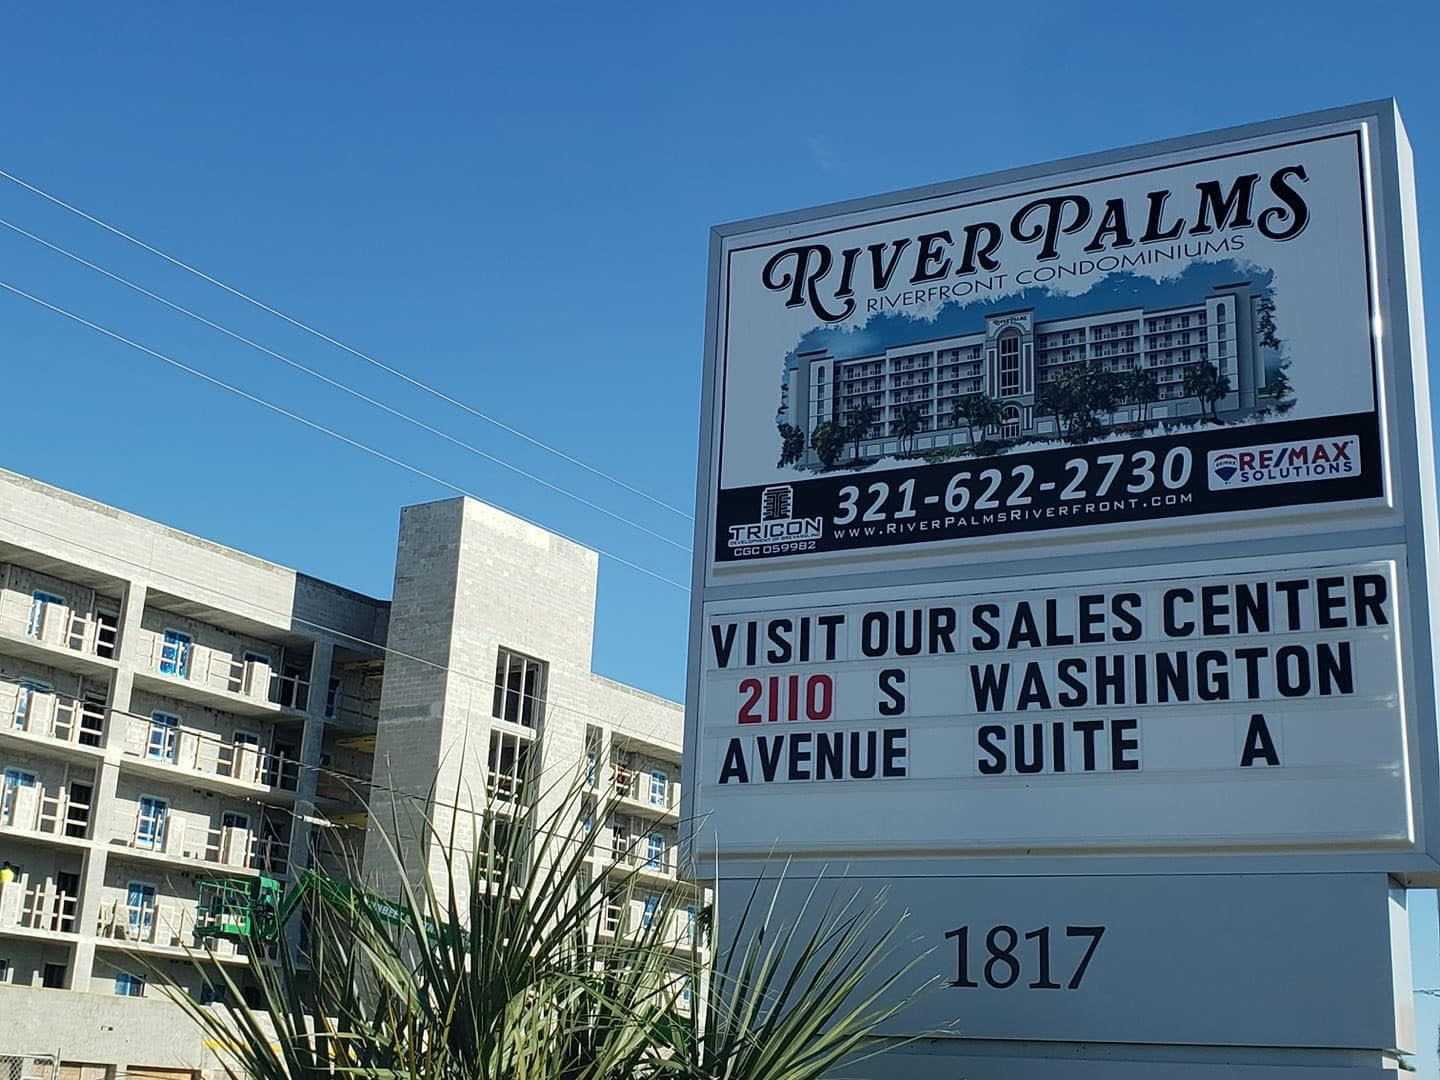 River Palms Riverfront condos in Titusville FL sales office